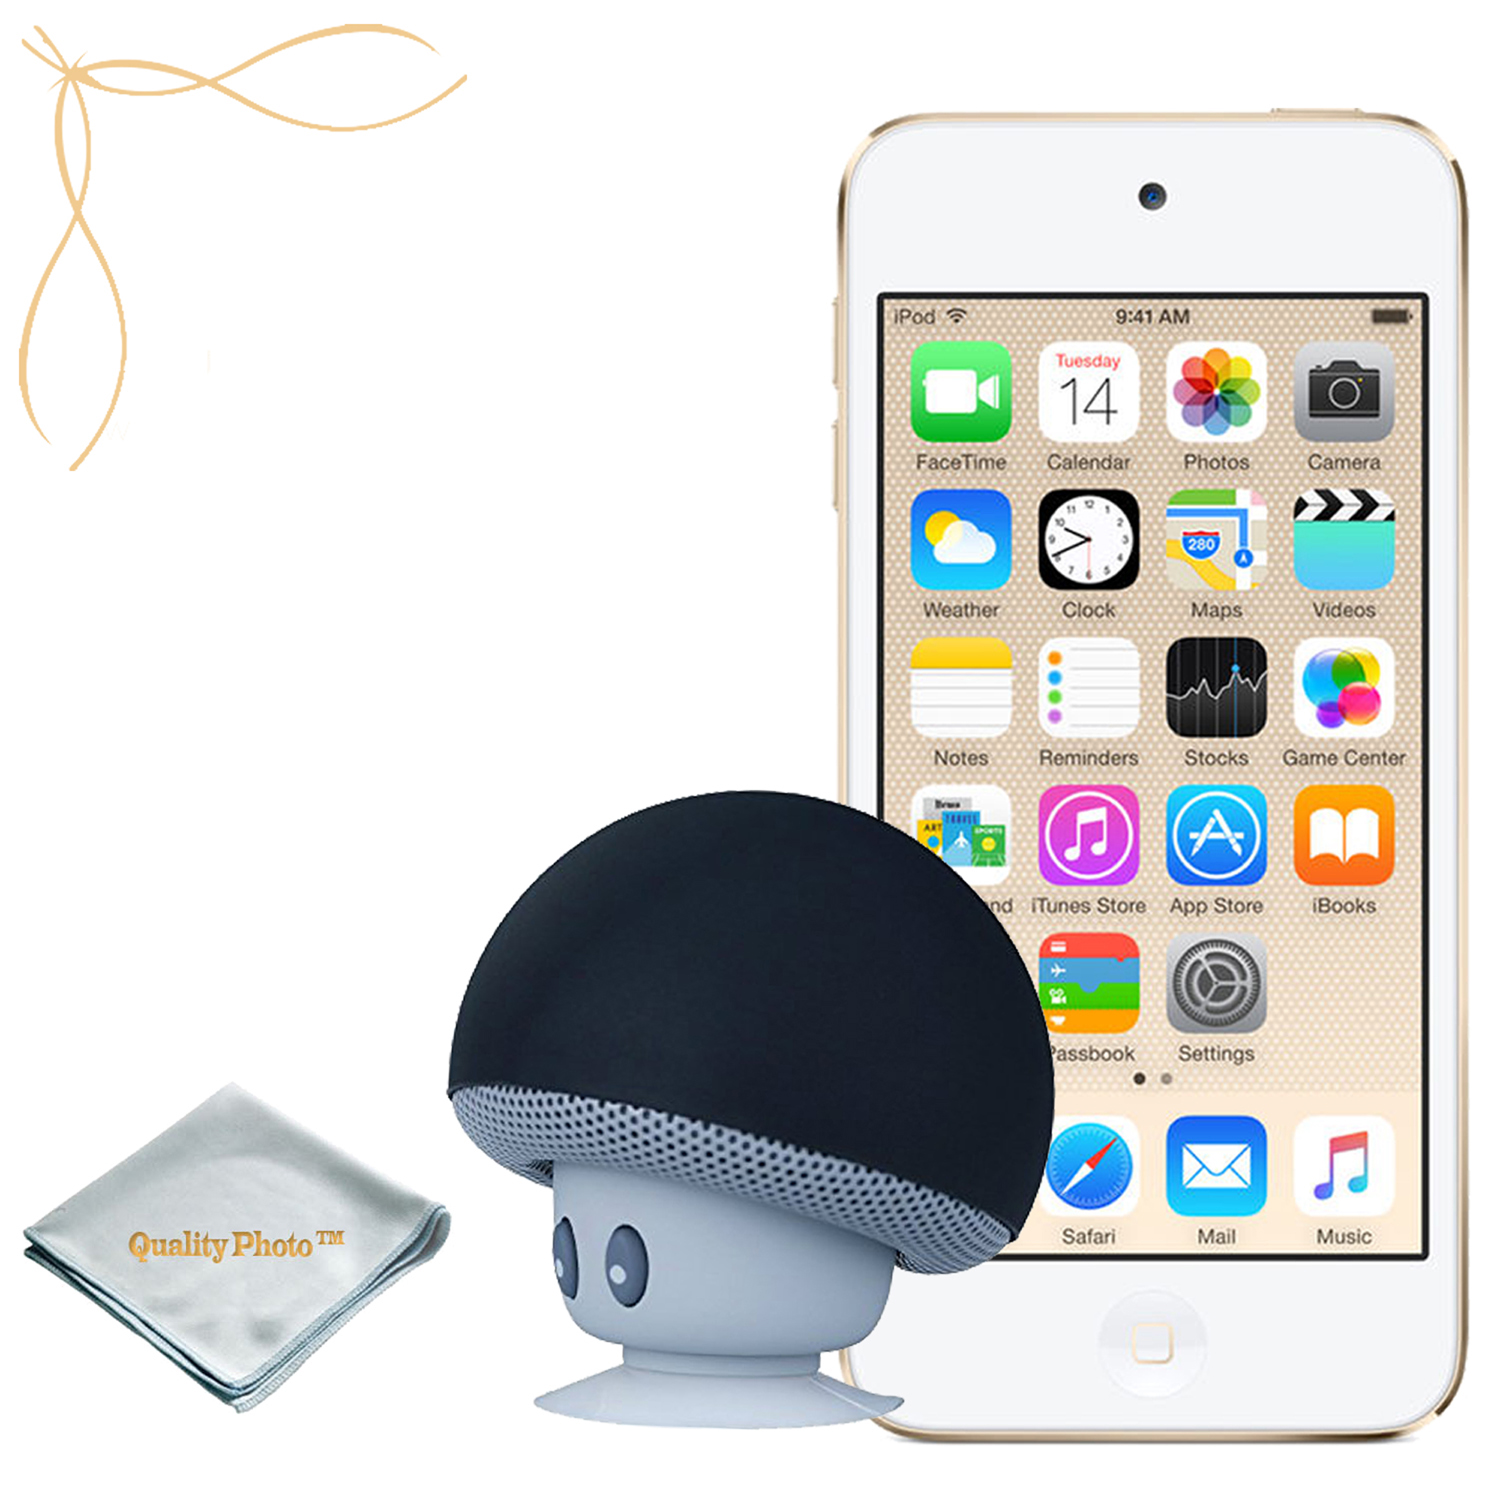 Apple iPod Touch Gold 32GB (6th Generation) - Mushroom Bluetooth Wireless Speaker/iPod Stand - Quality Photo Cloth